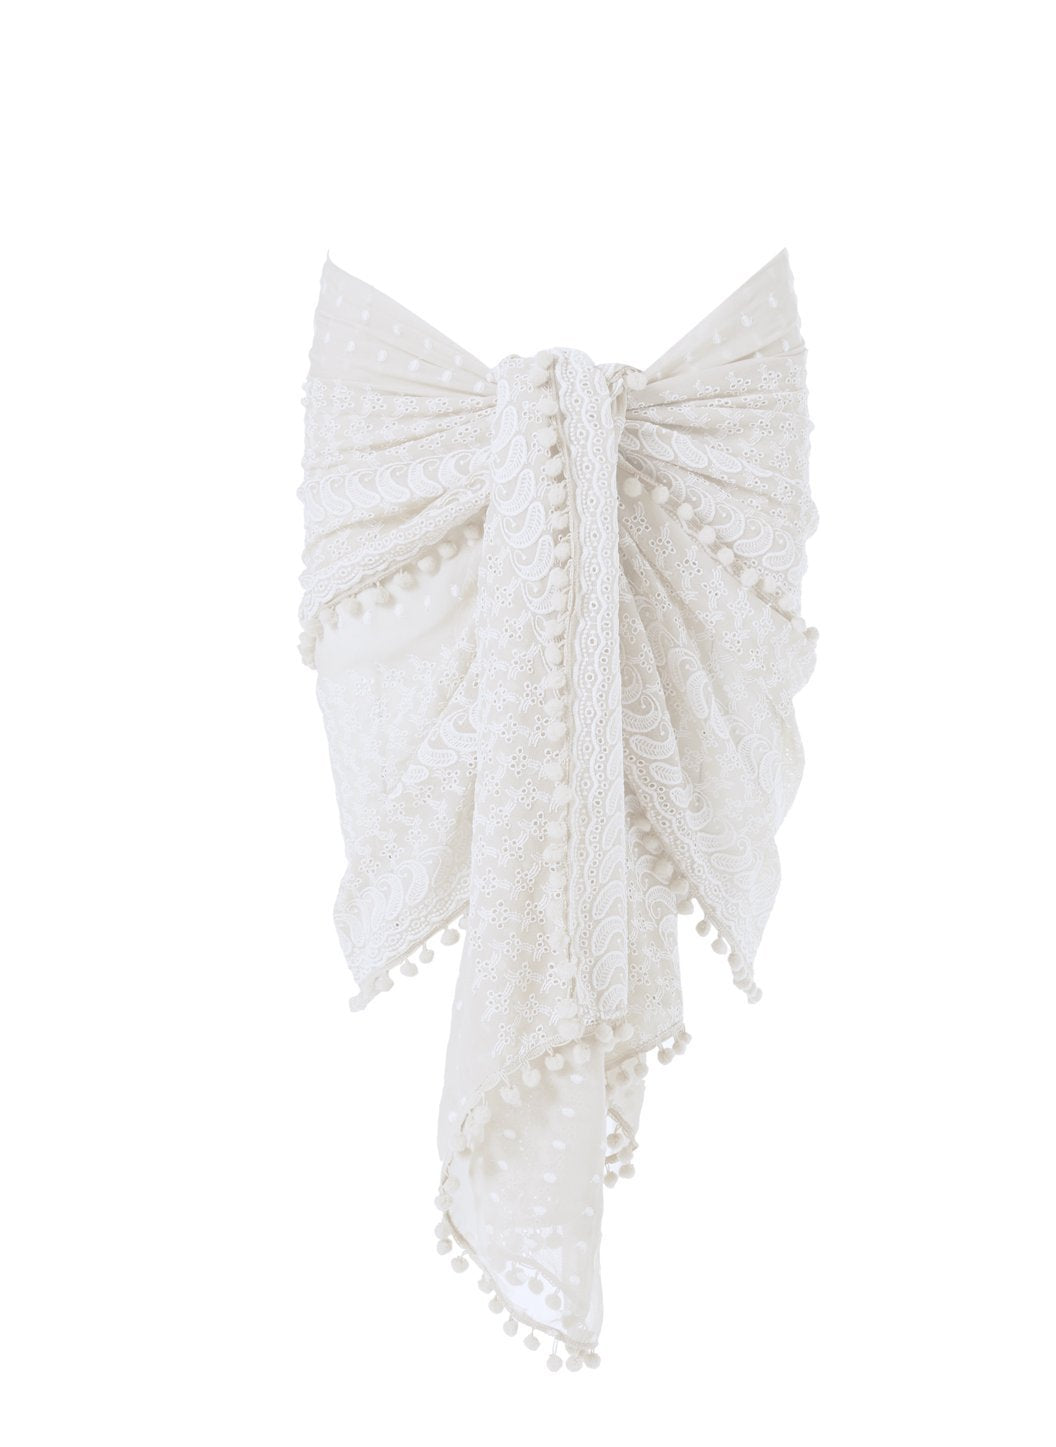 pareo white embroidered multiway coverup 2019 2